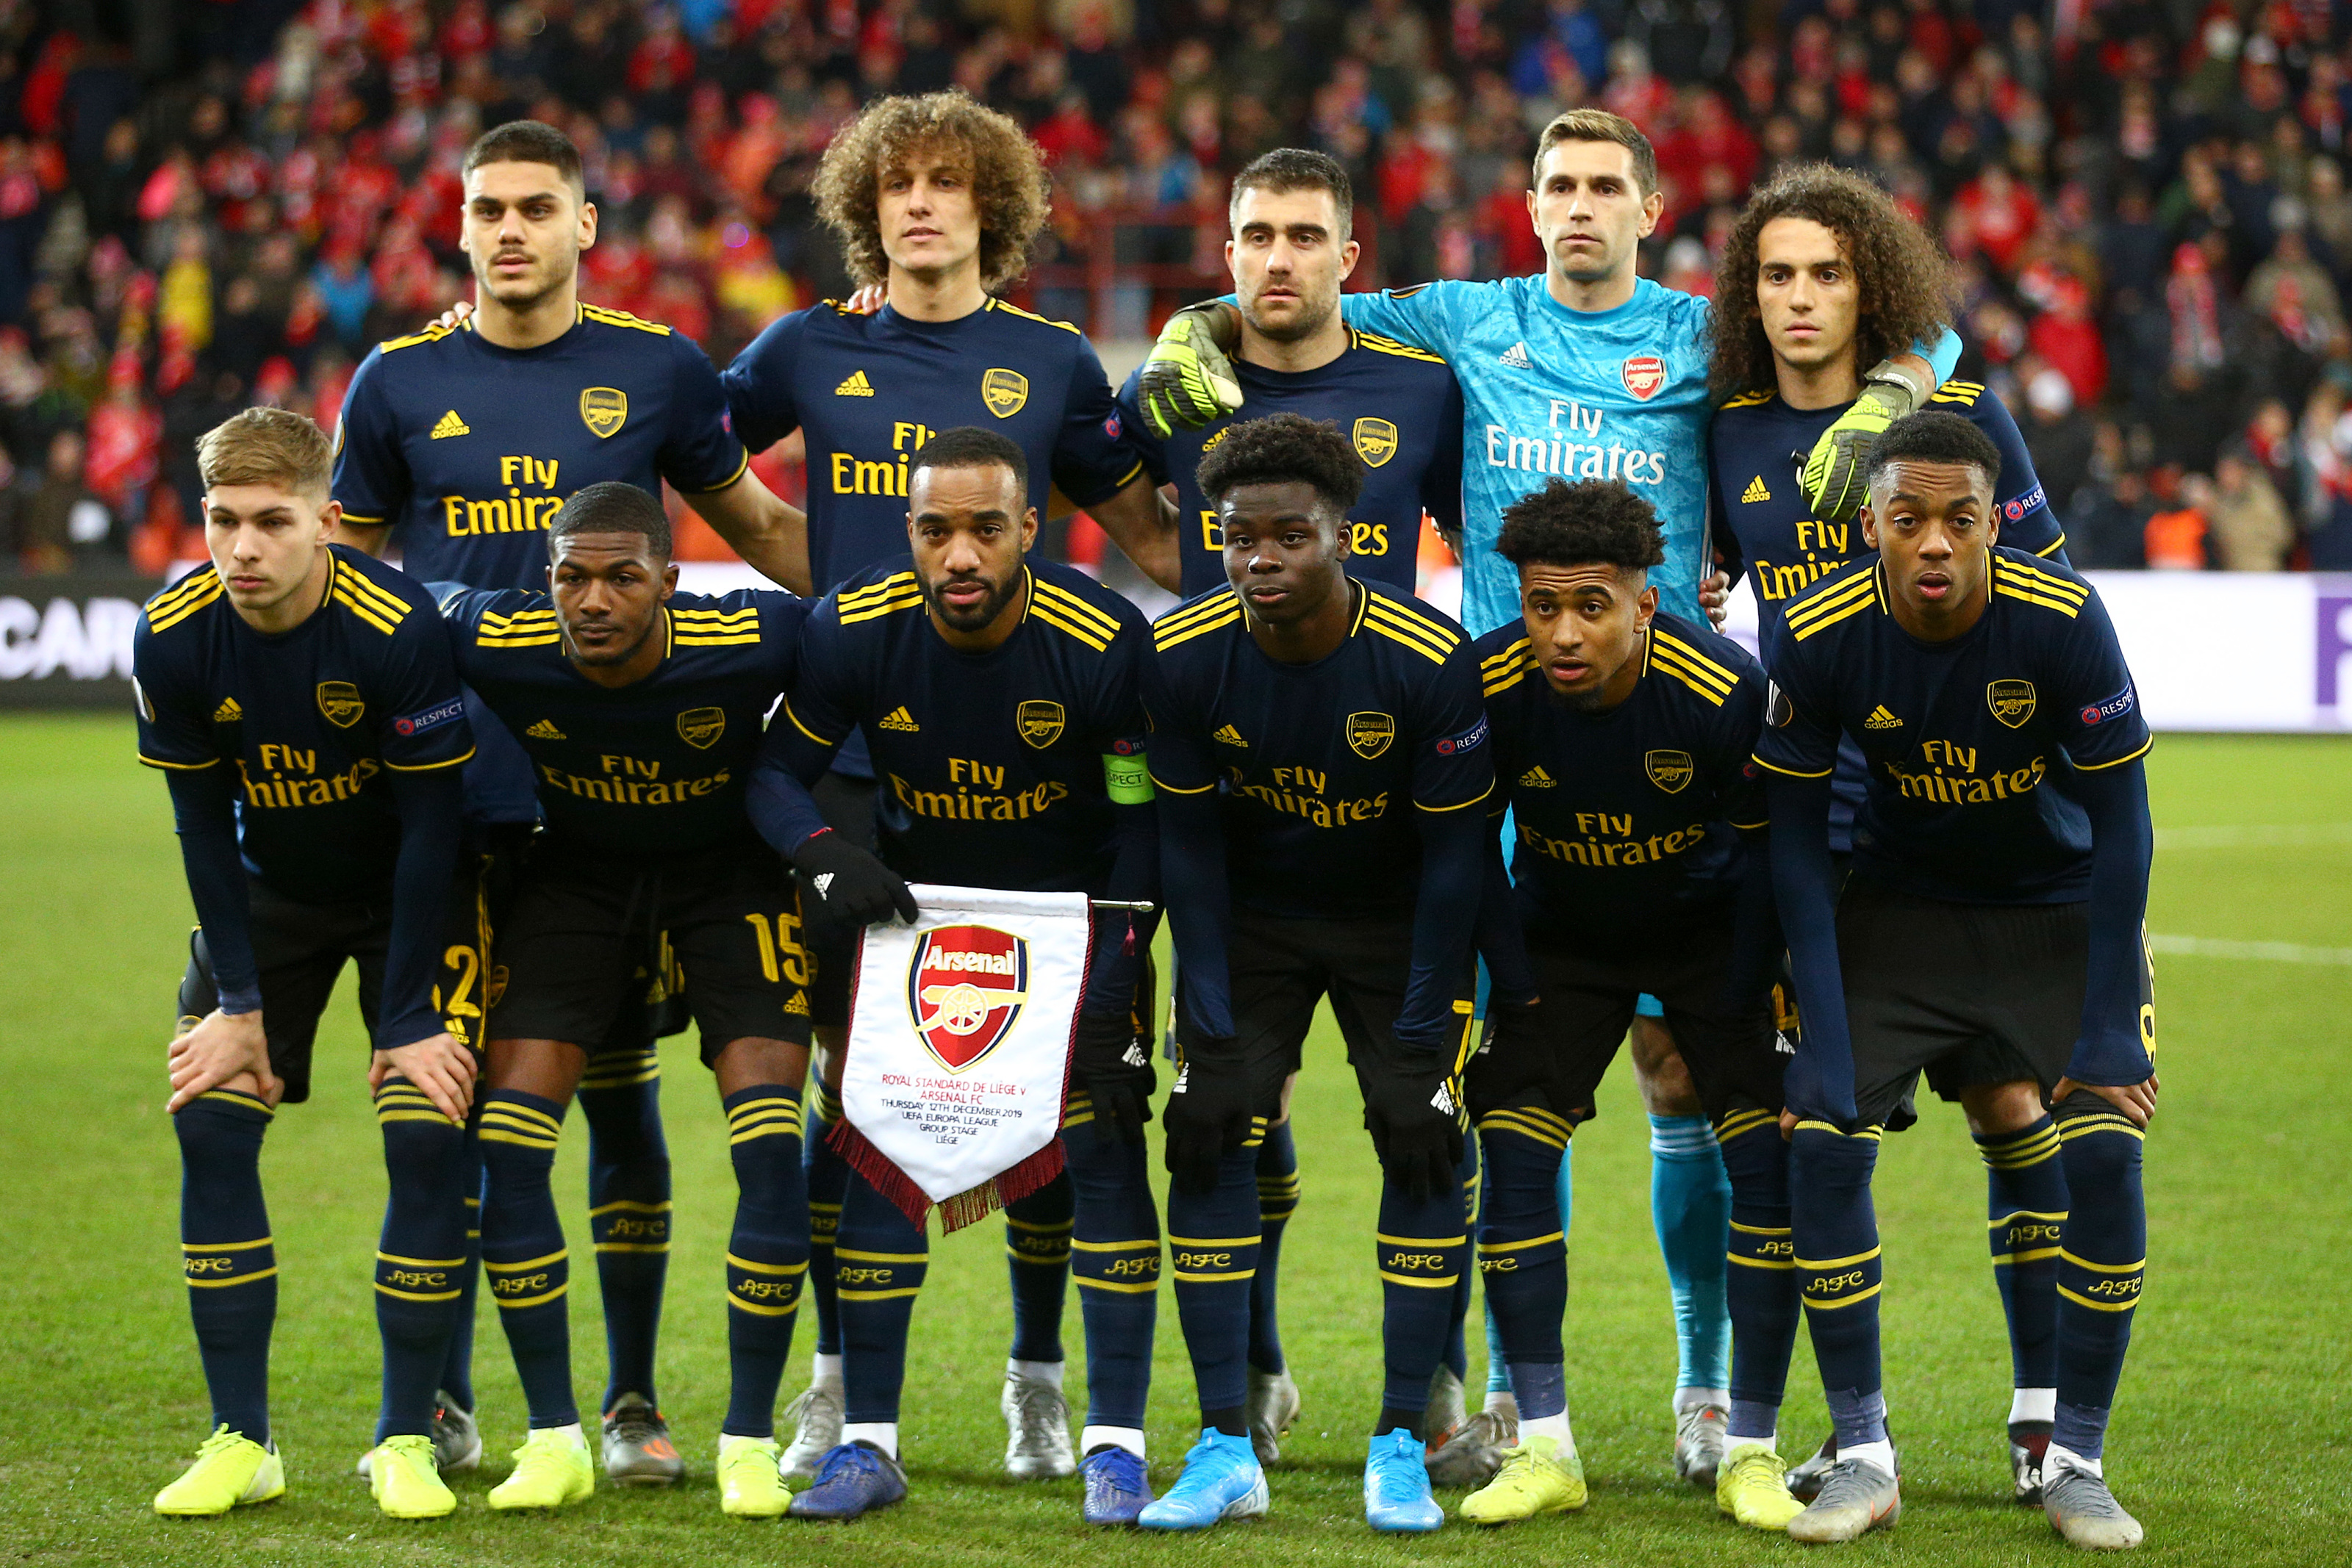 arsenal s 2020 21 europa league group stage opponents https paininthearsenal com 2020 10 02 arsenal europa league group opponents